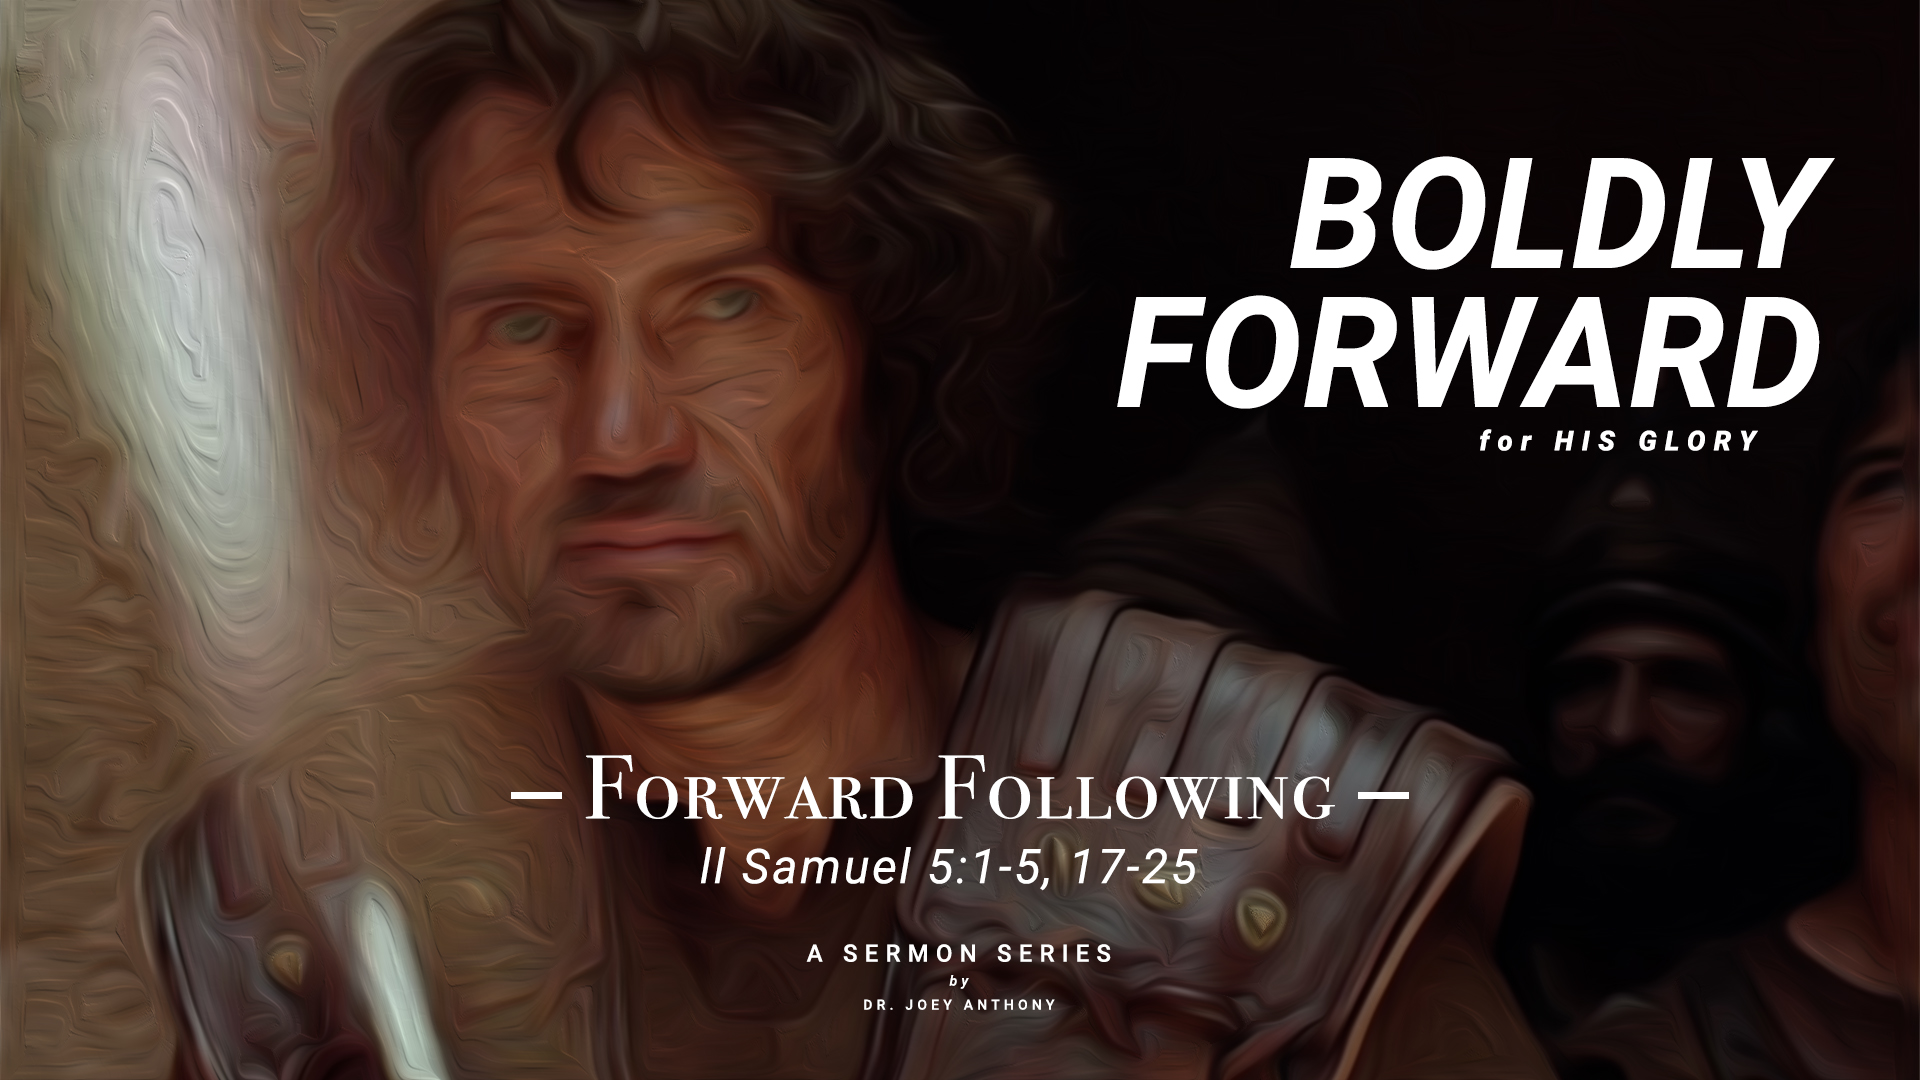 Forward Following – Boldly Forward For His Glory